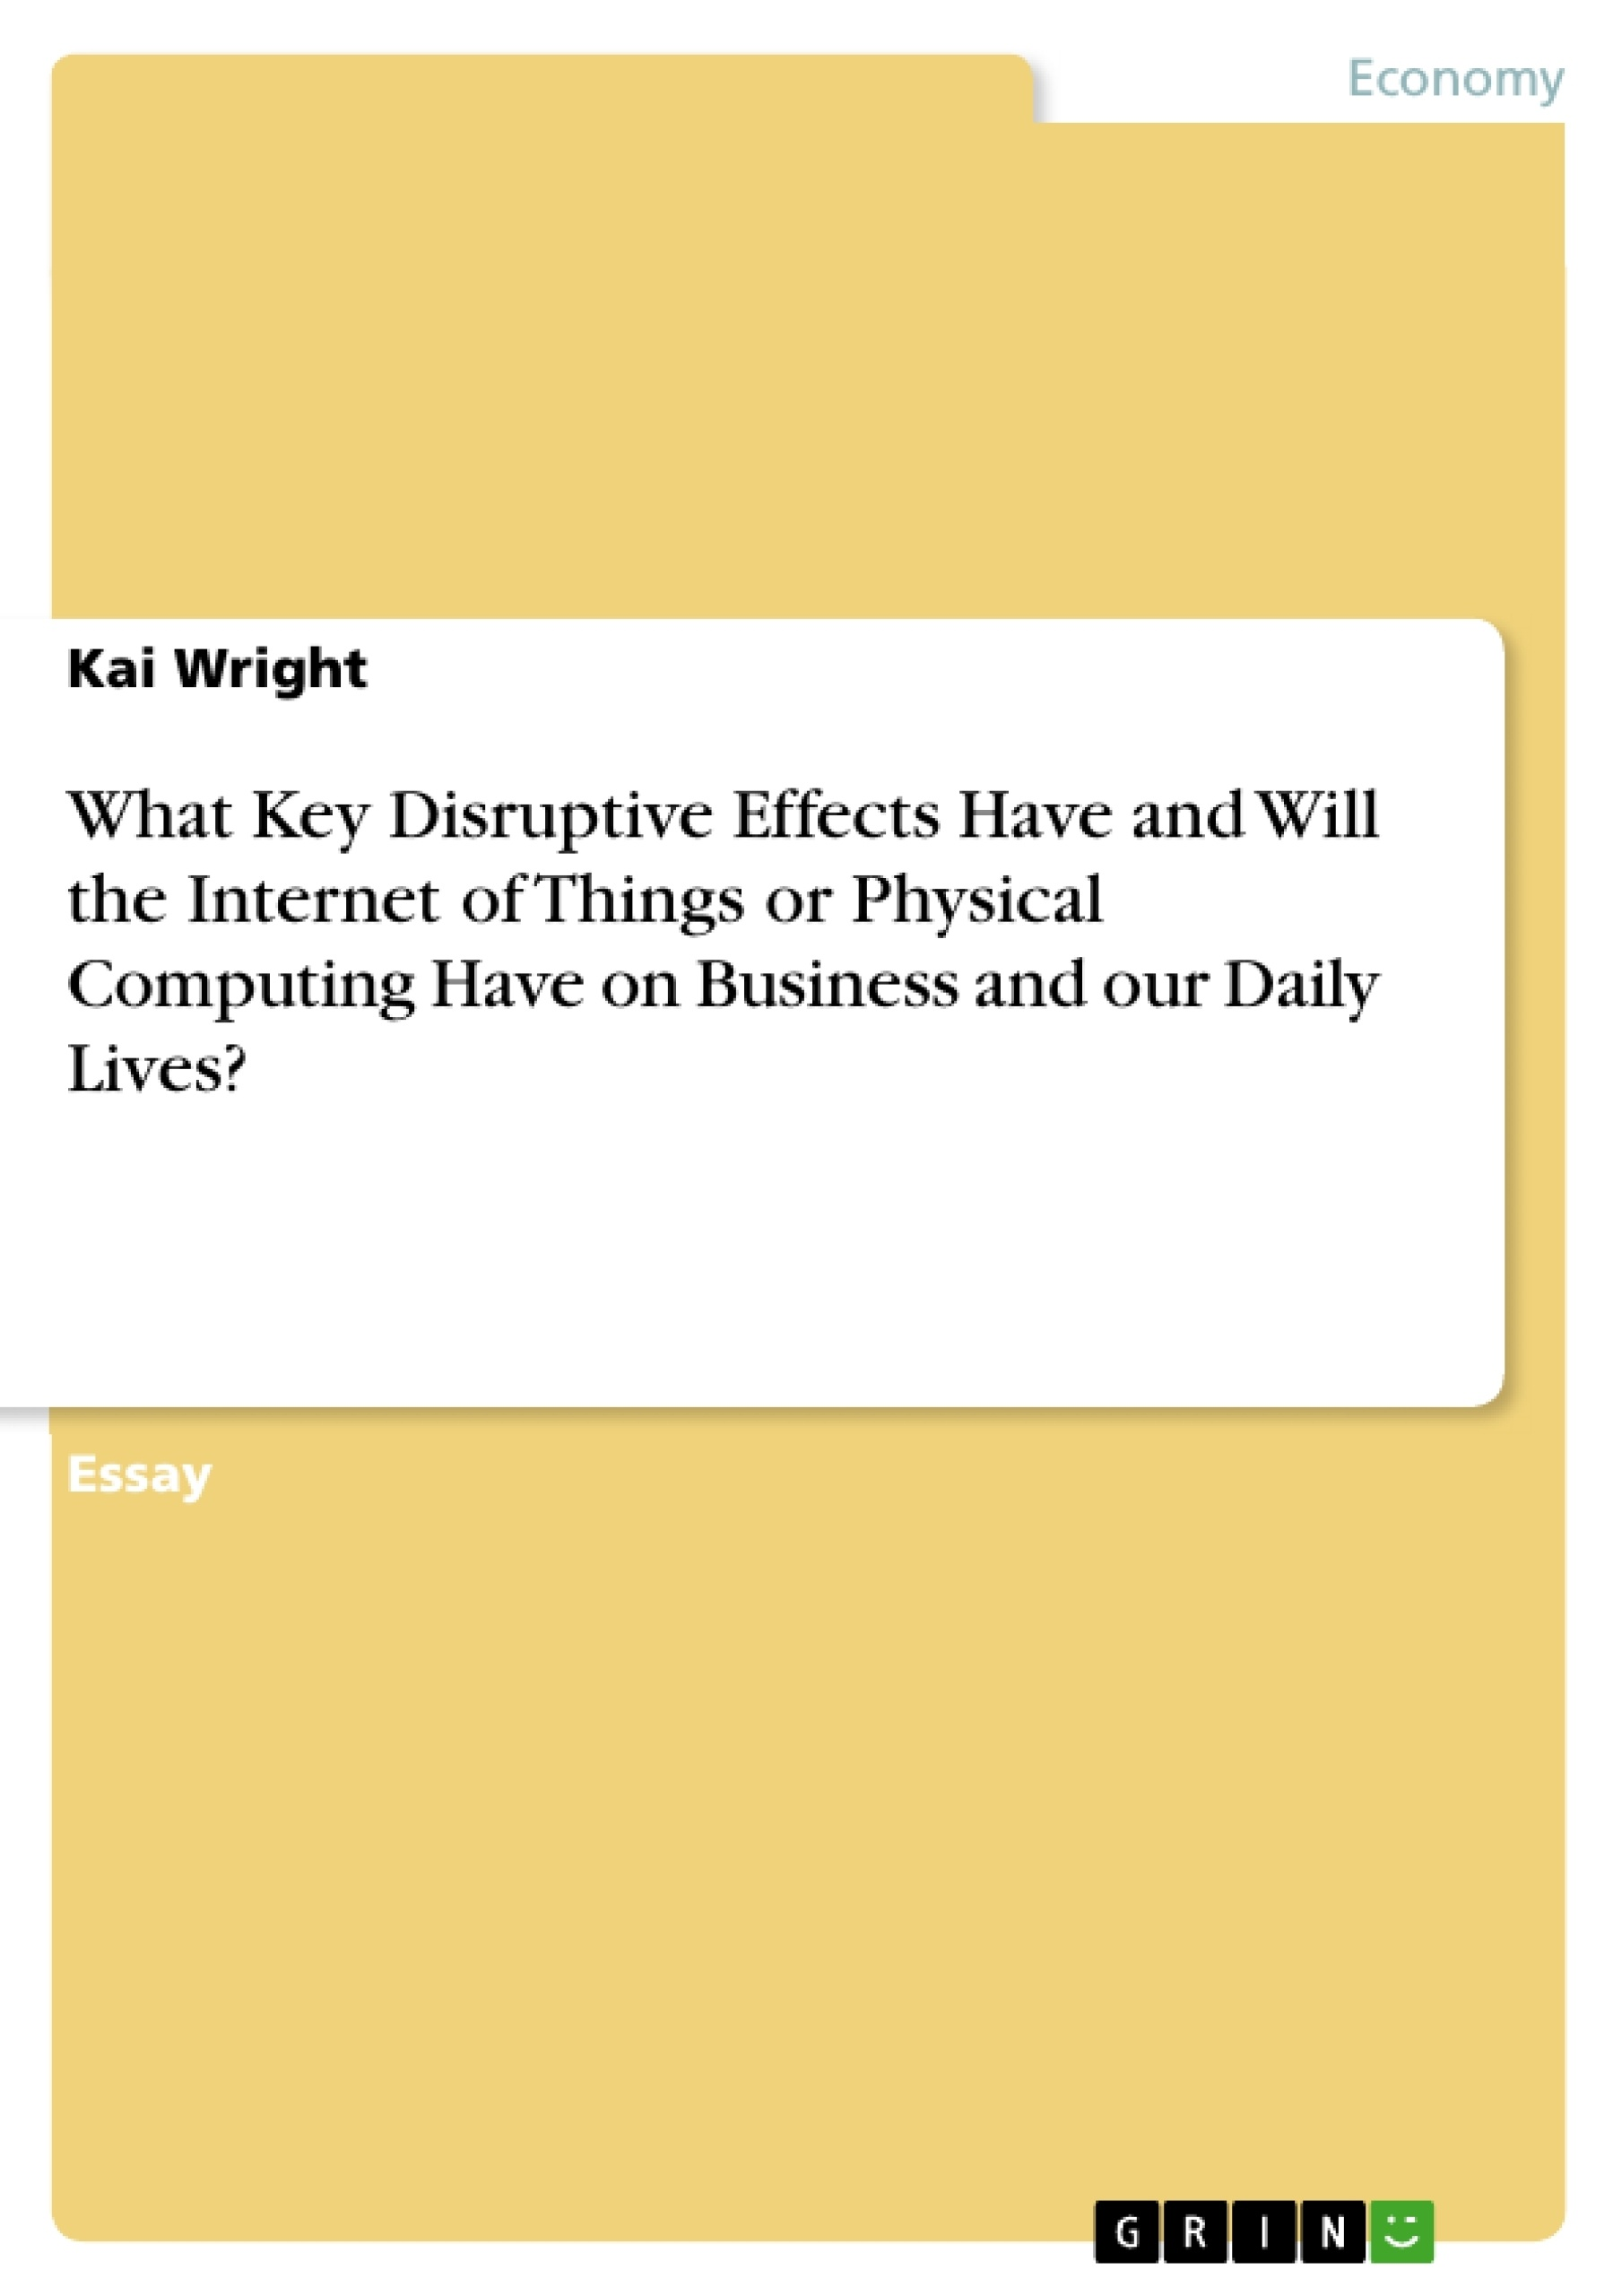 Title: What Key Disruptive Effects Have and Will the Internet of Things or Physical Computing Have on Business and our Daily Lives?